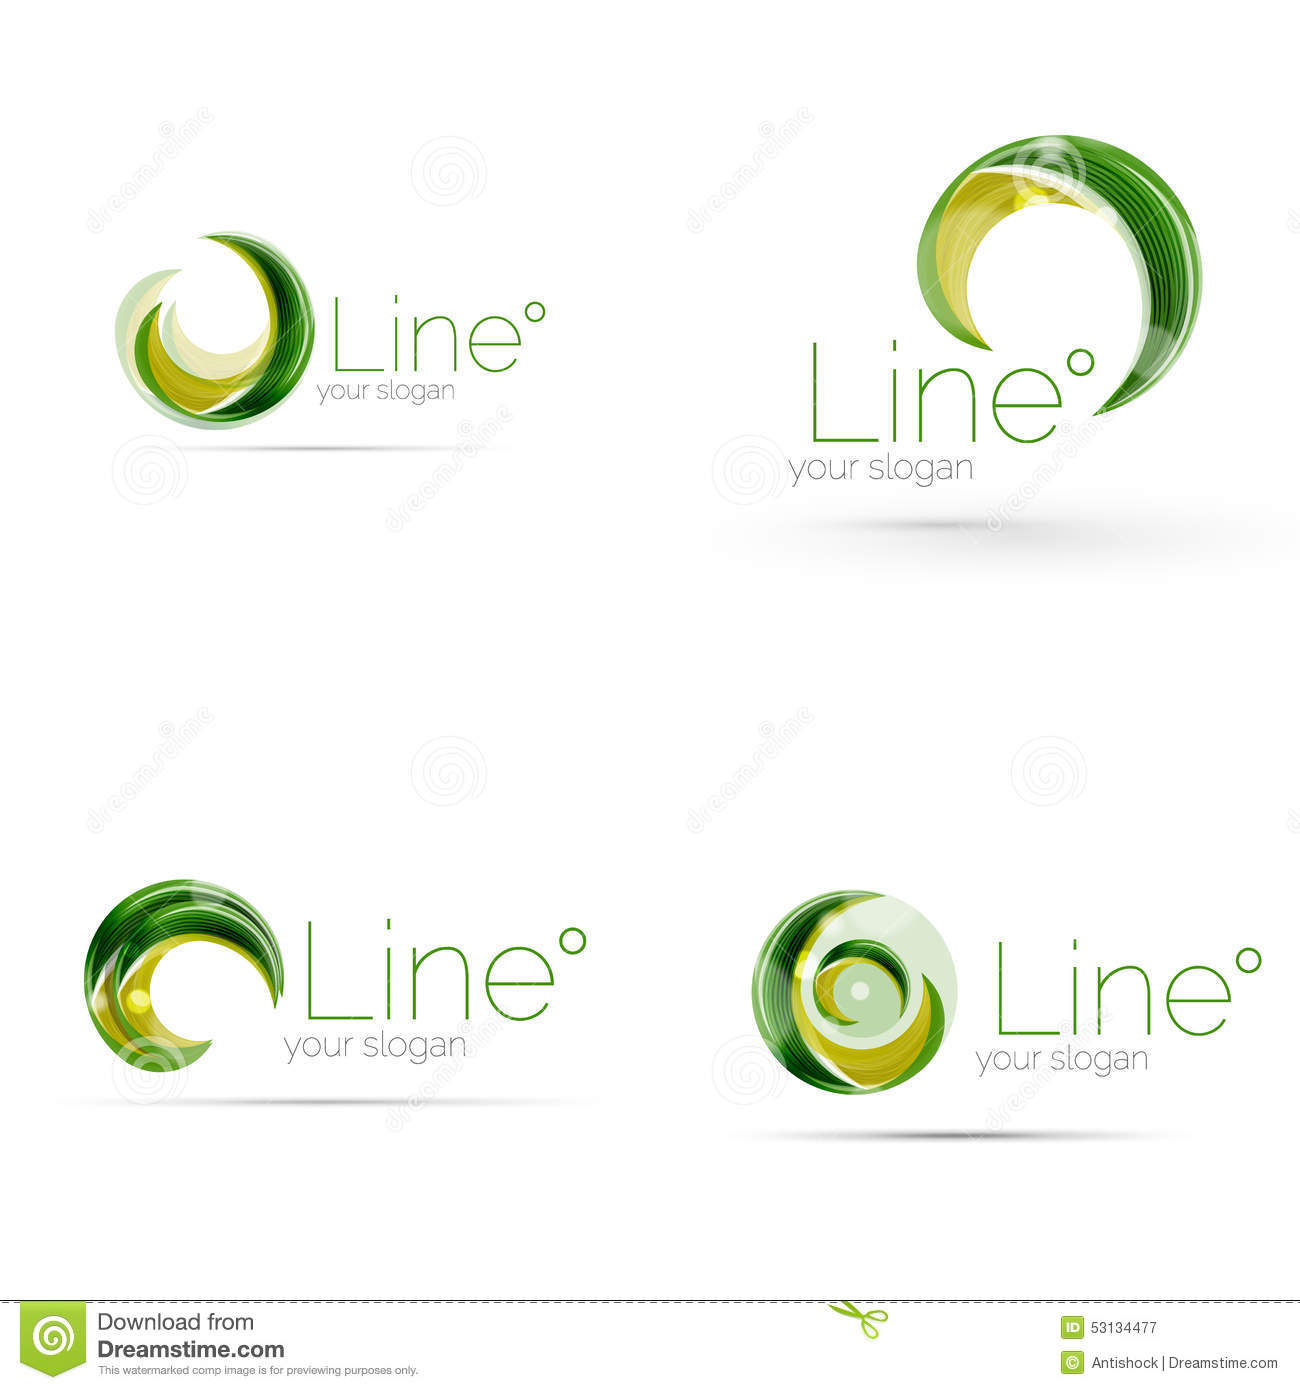 Company Logo Design Ideas logo design by name of company design company name ideas design ideas company street dog design Swirl Company Logo Design